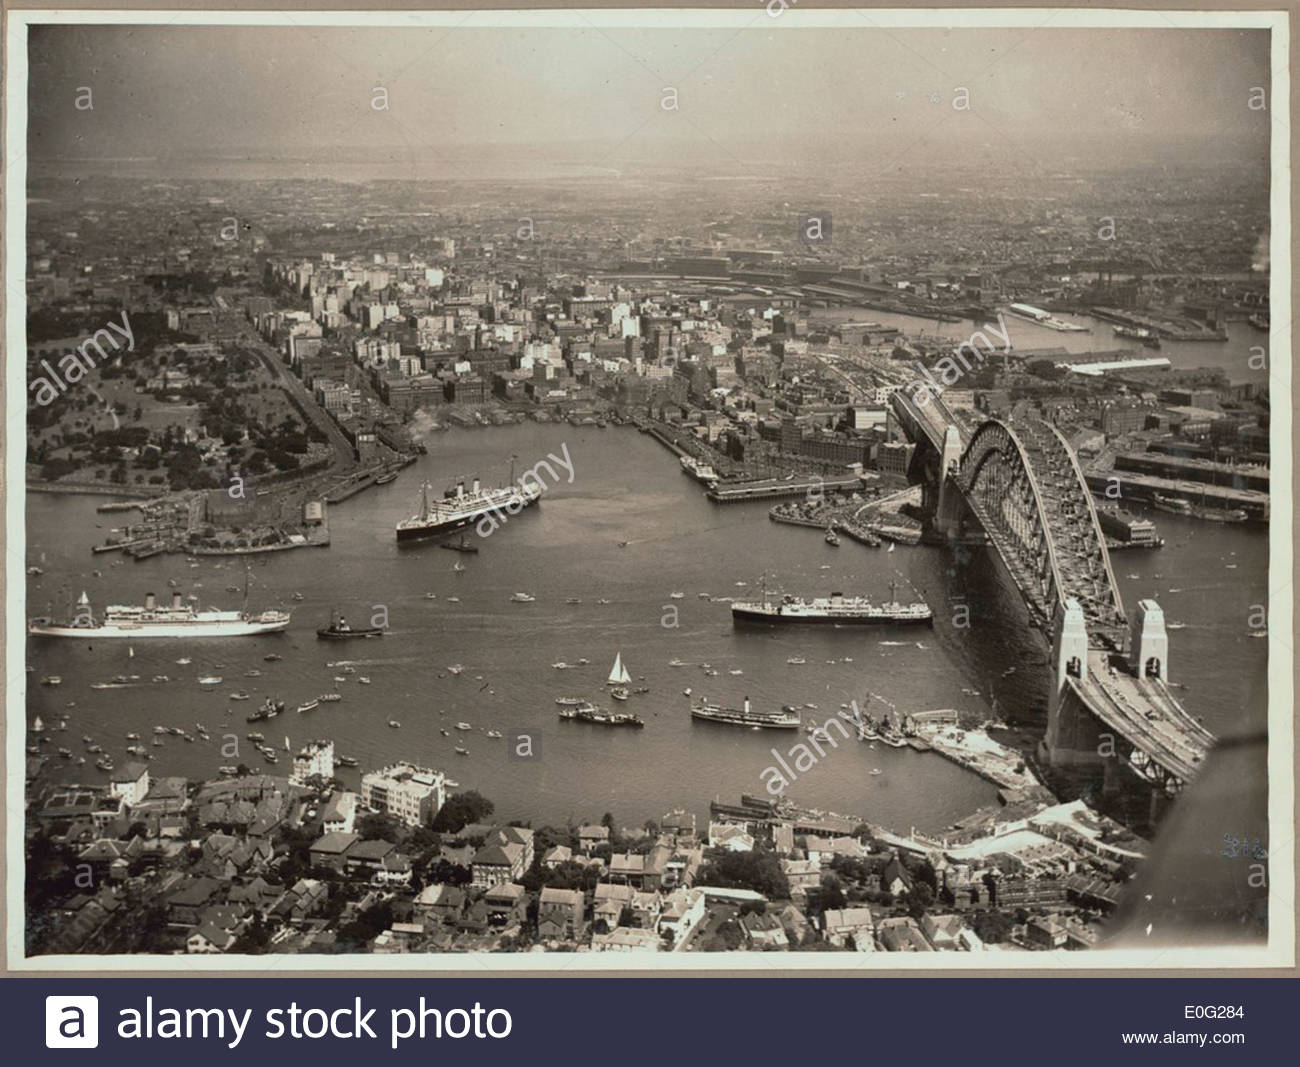 Aerial view of Sydney and Circular Quay on the day of the official opening of the Sydney Harbour Bridge, 19 March, 1932 - Stock Image